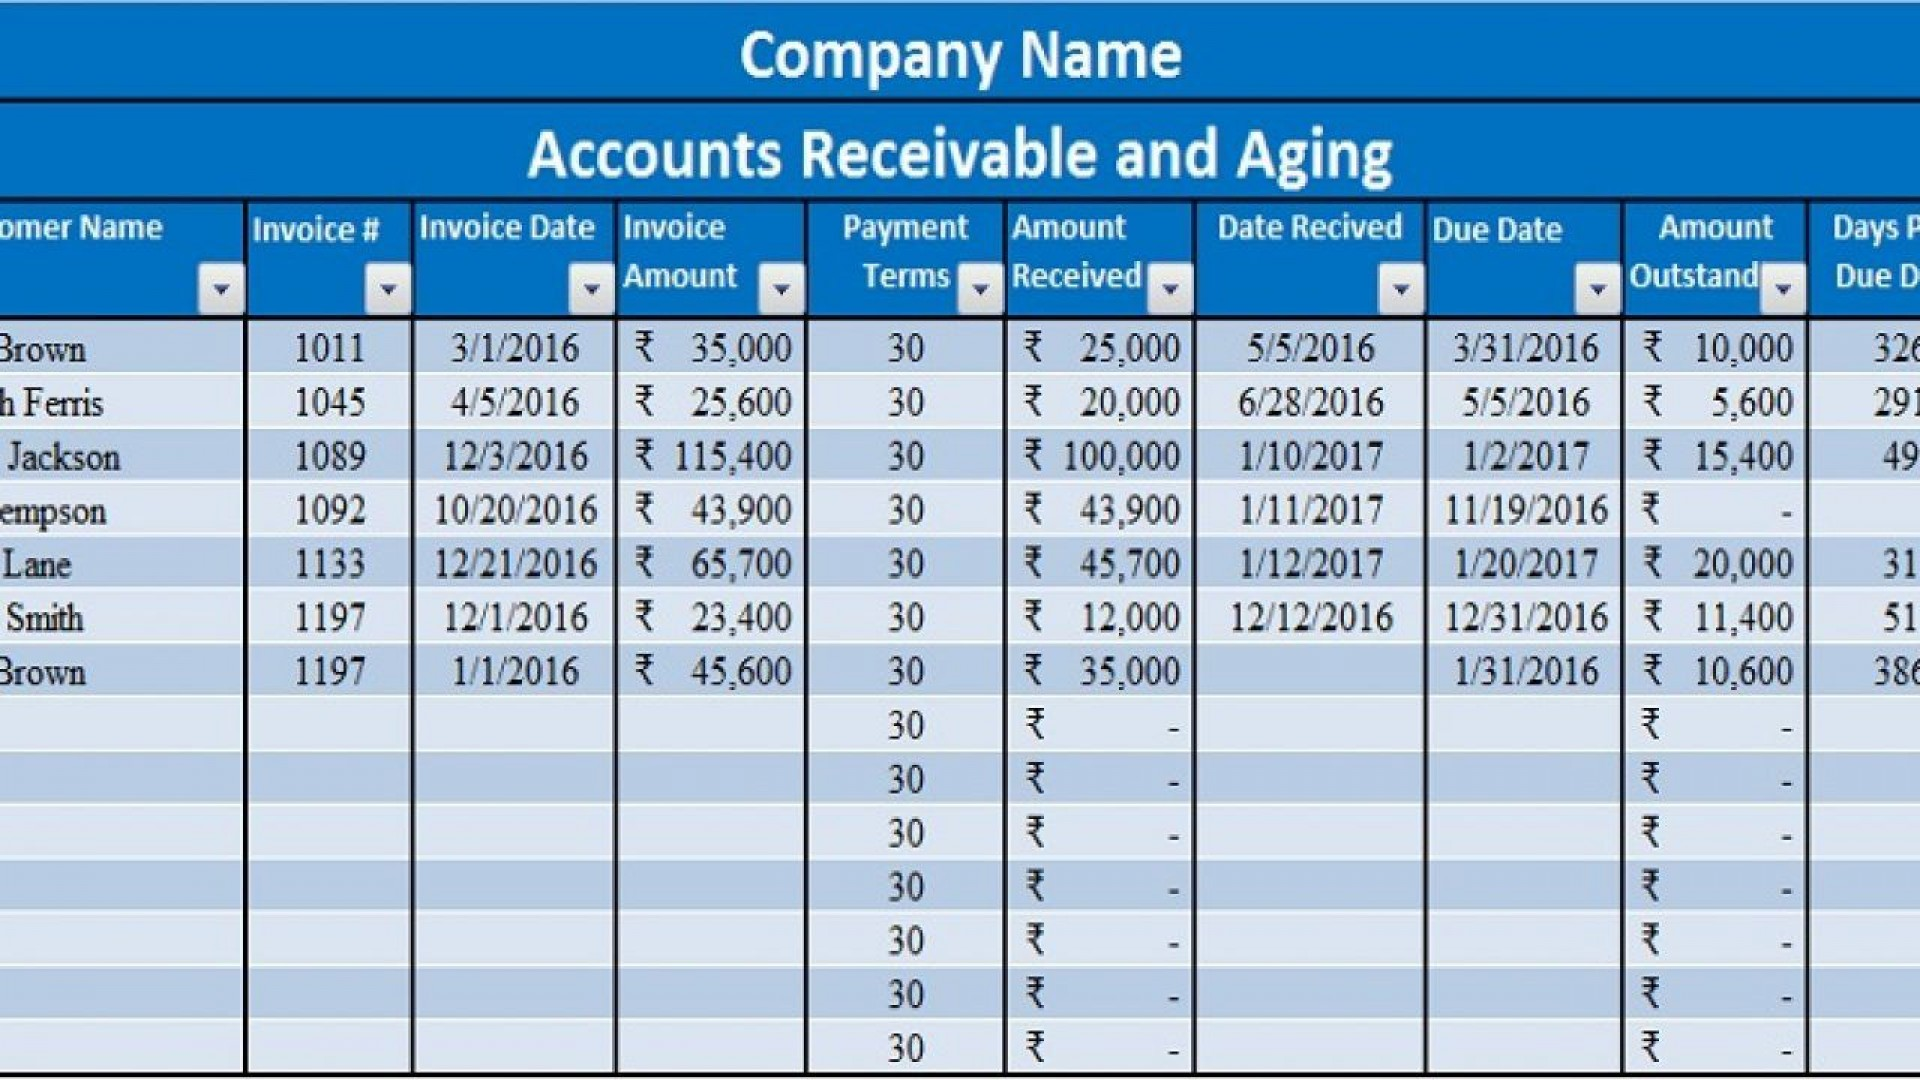 005 Formidable Account Receivable Excel Spreadsheet Template Photo  Management Dashboard Free1920